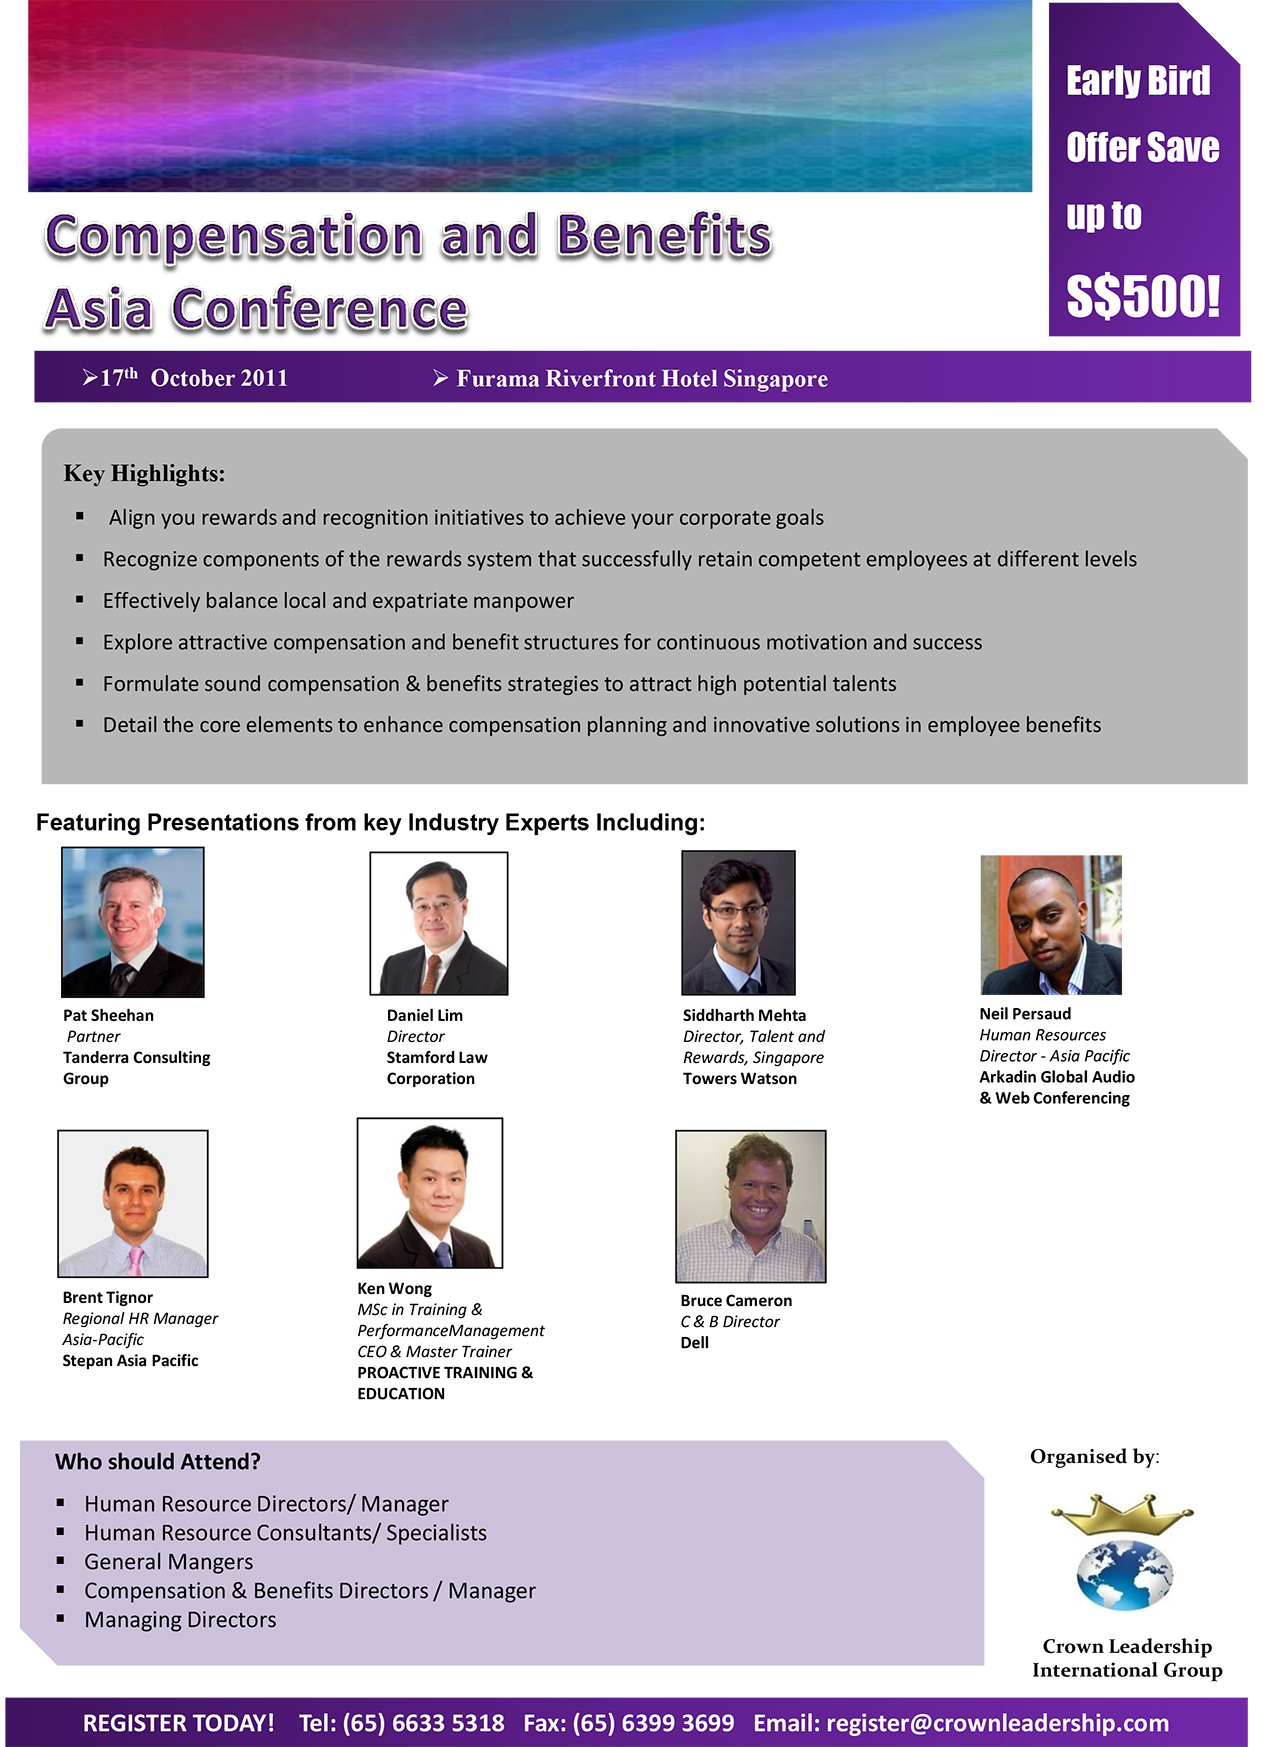 Compensation and Benefits Asia Conf